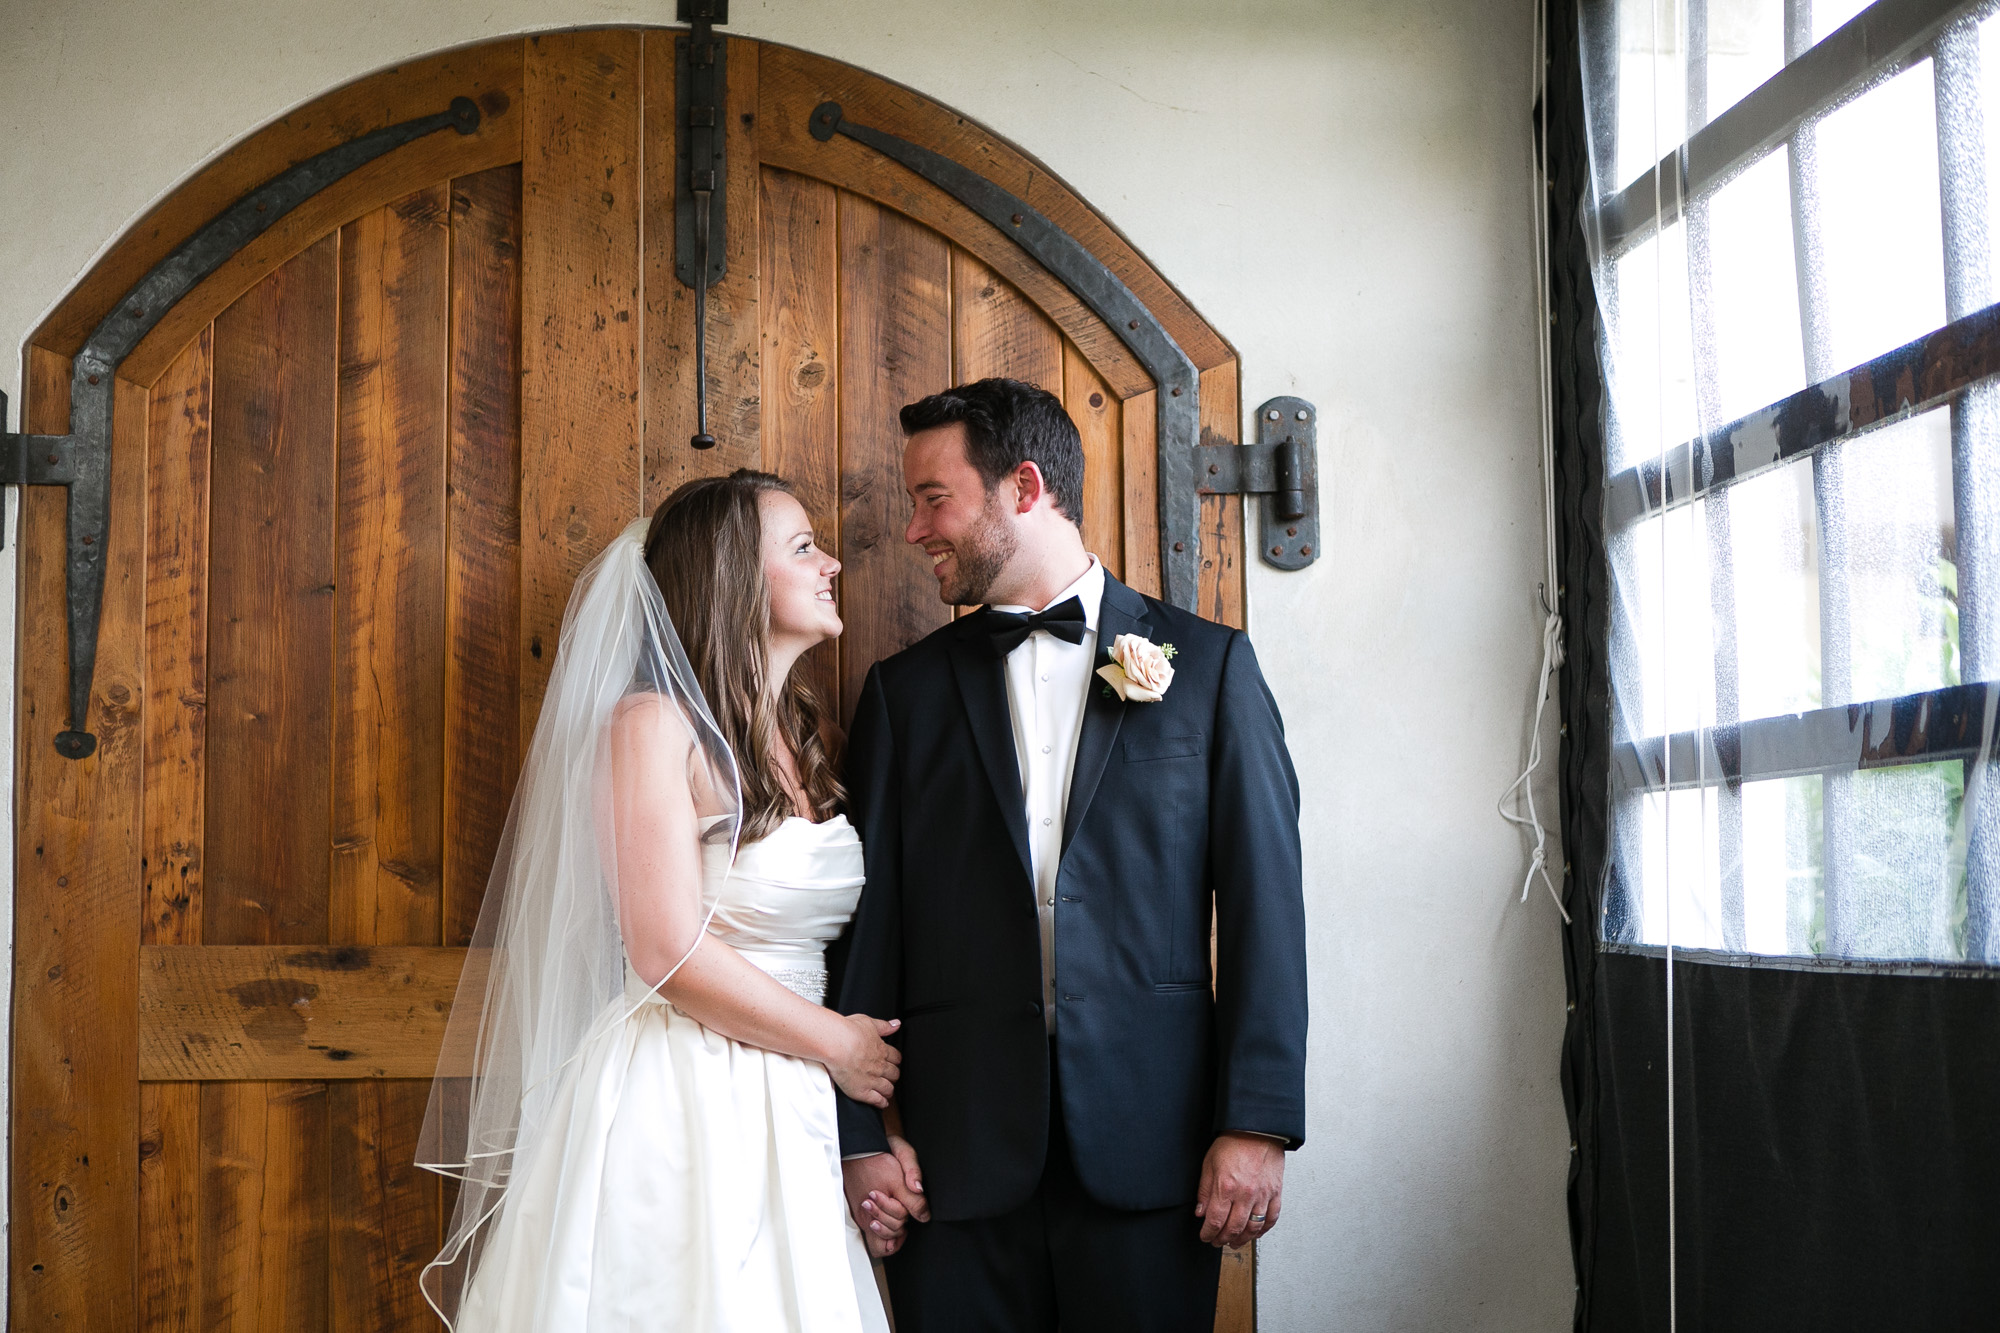 Top Rated Wedding Photographer in New Hope PA - Jenna Perfette Photography